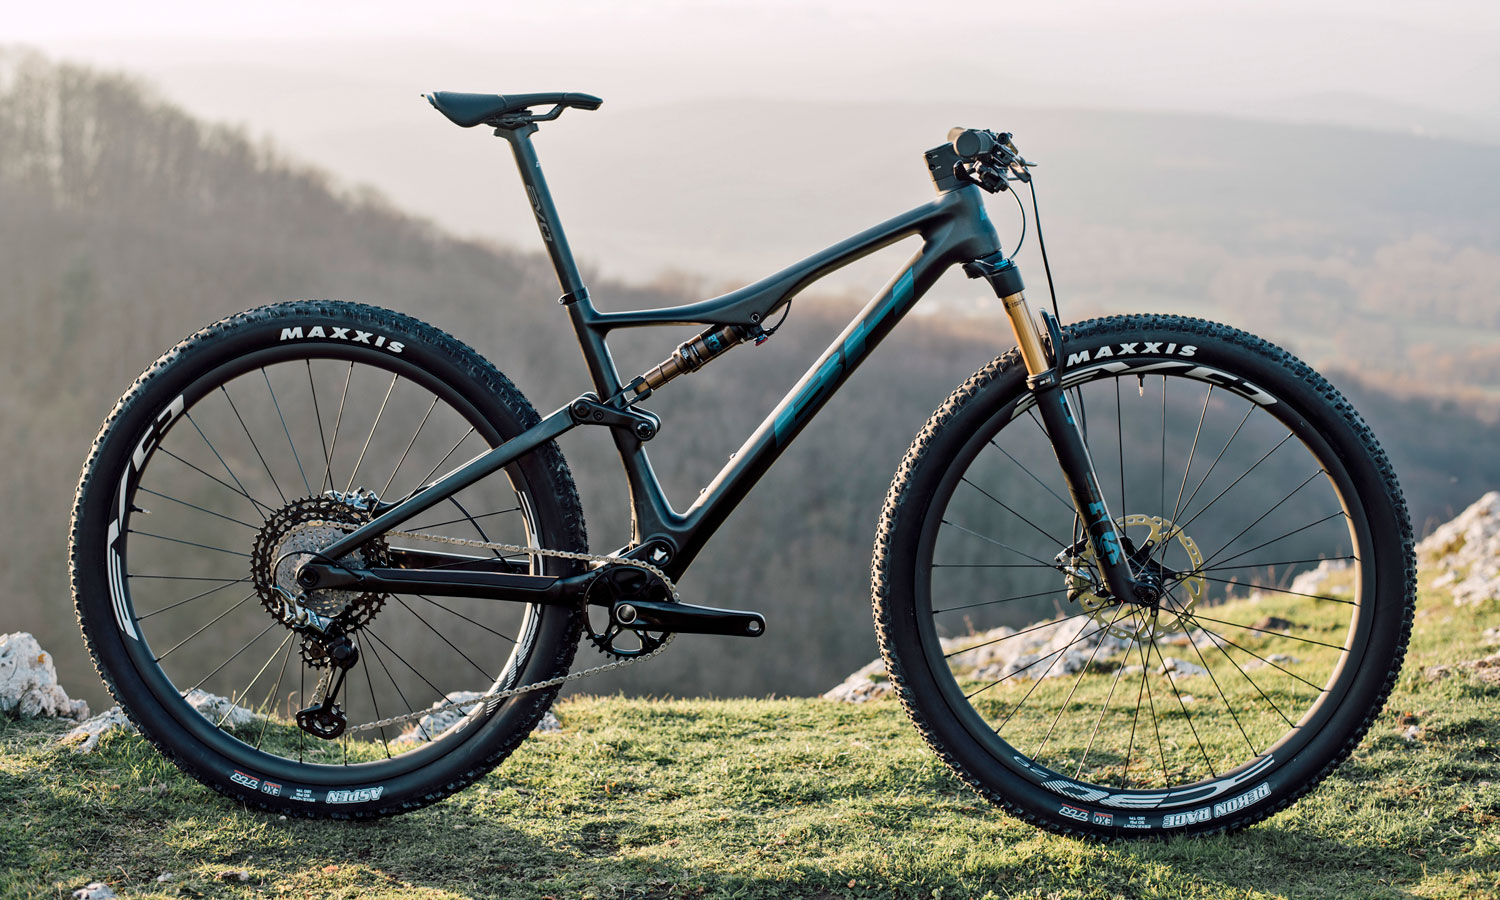 2021 BH Lynx Race EVO gives lightweight, trail-ready upgrade to XC mountain bike